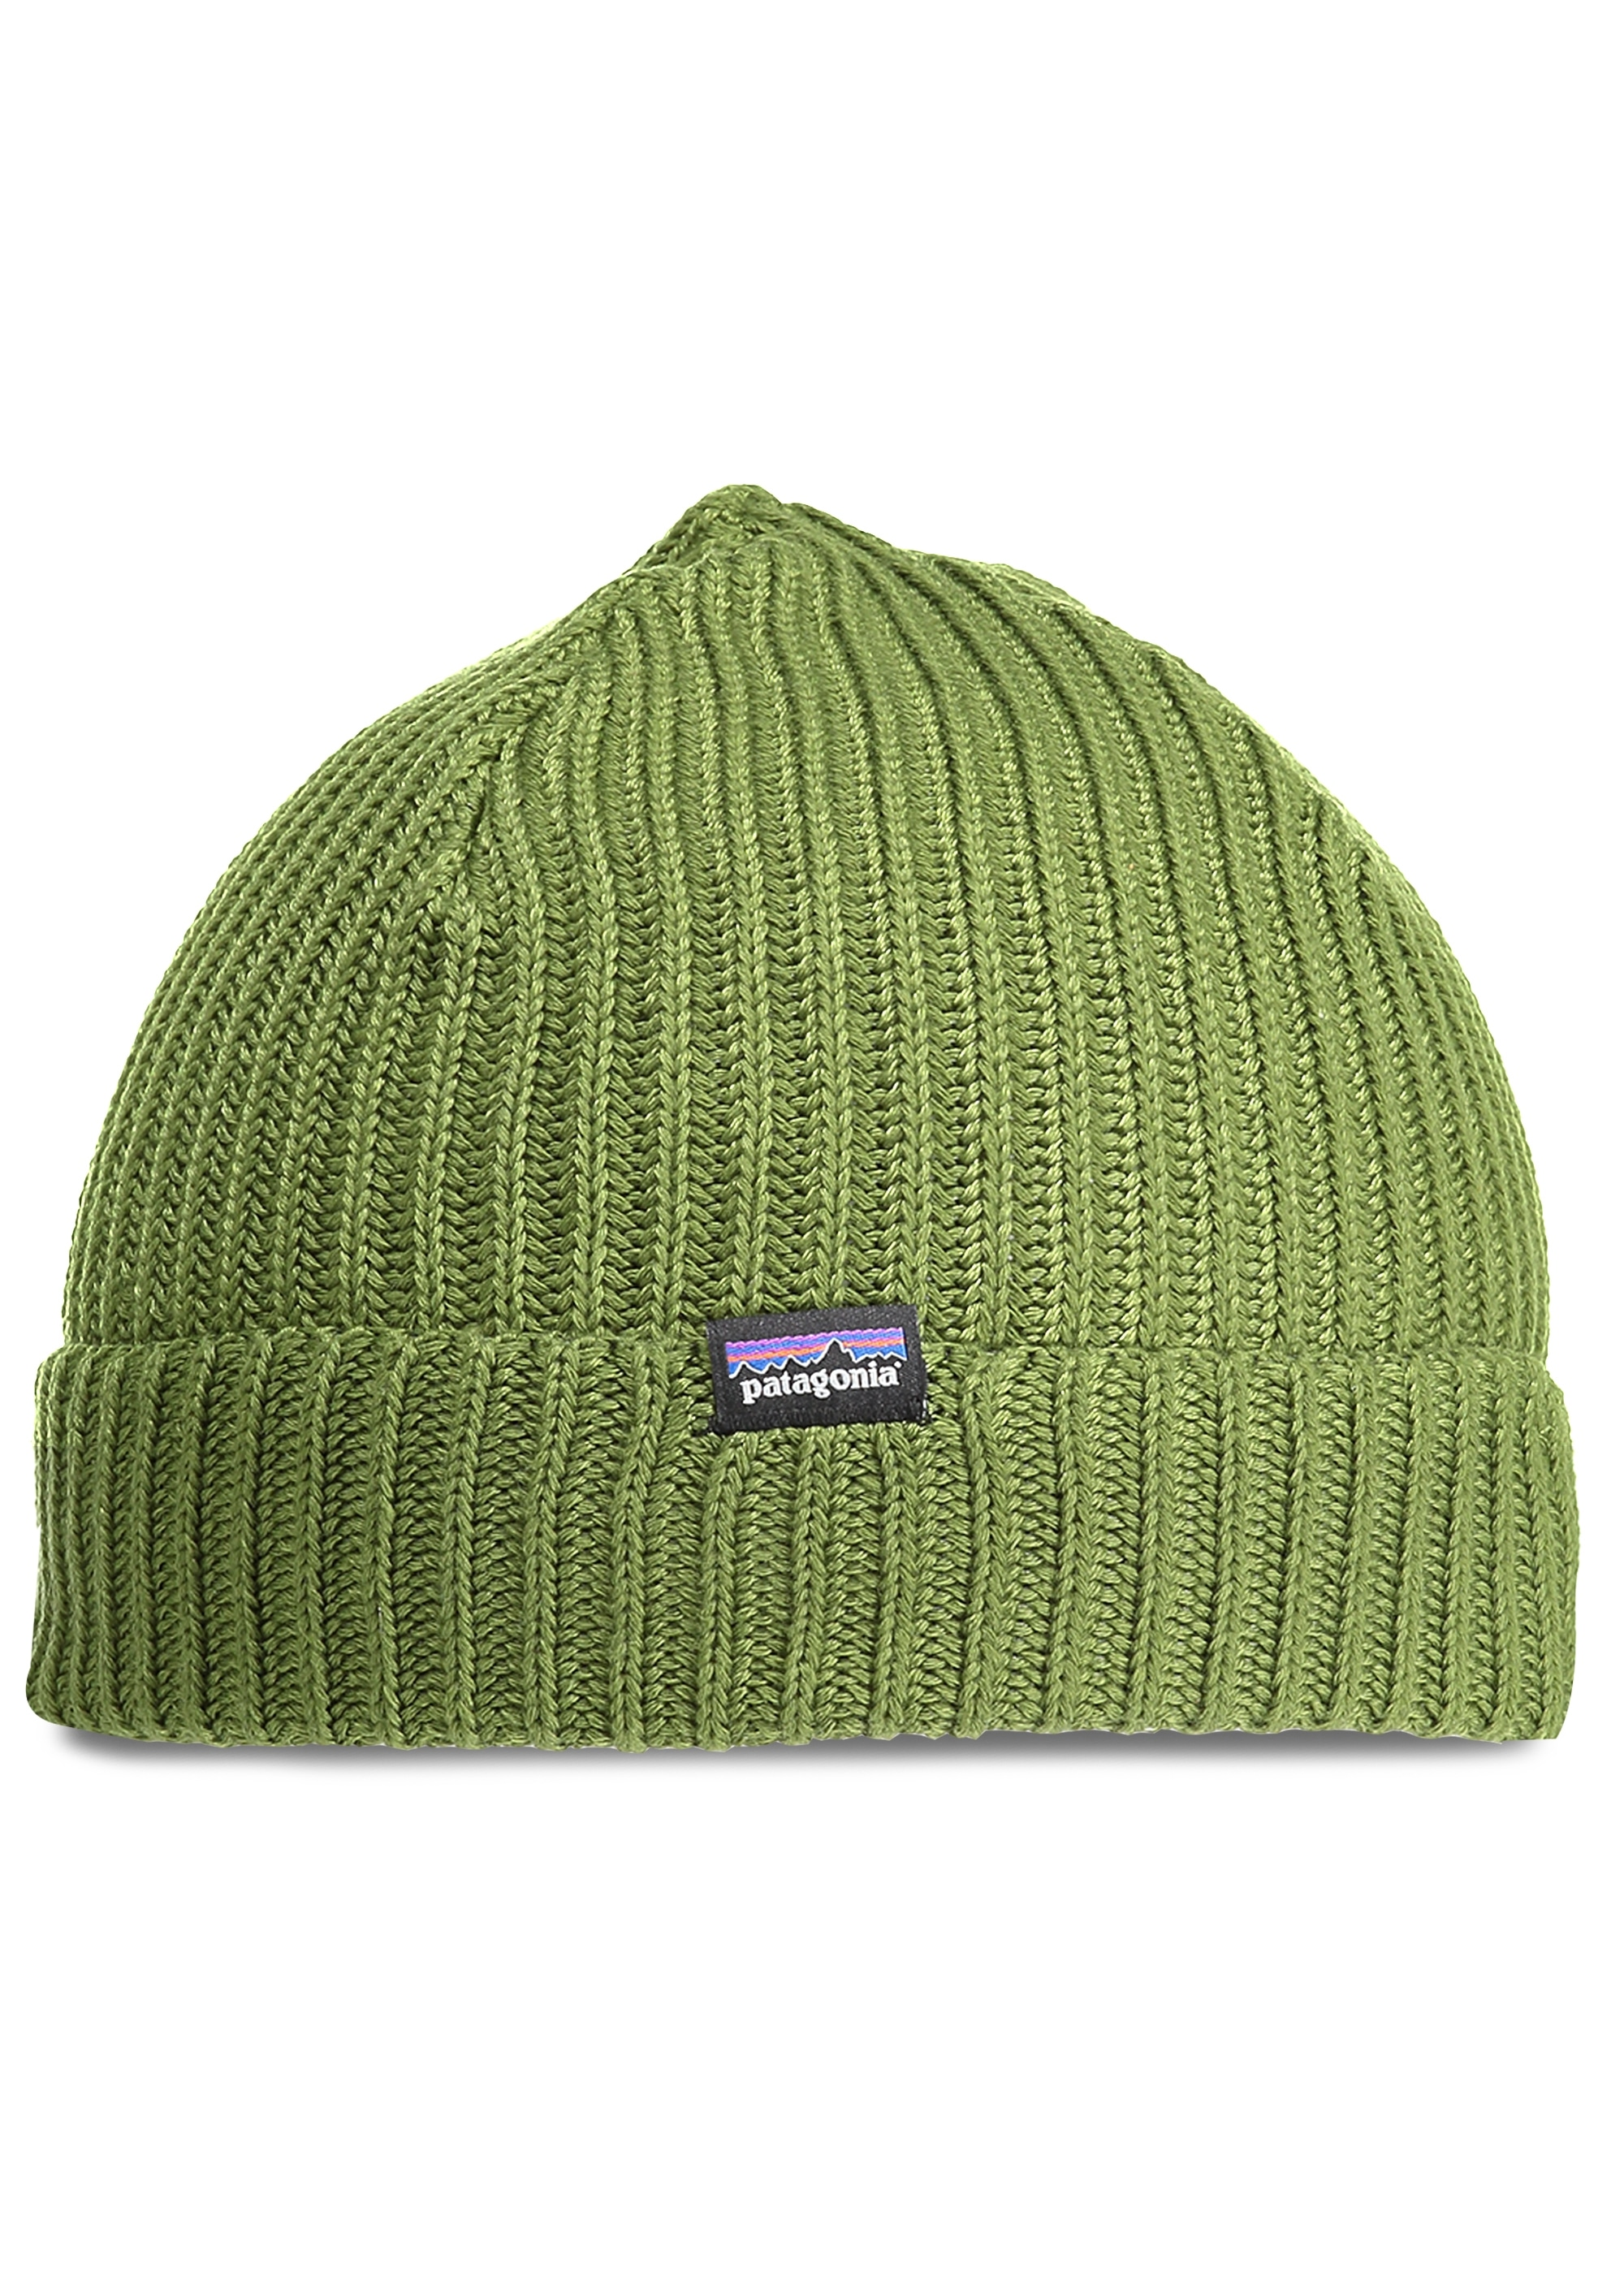 7371f755d1f Patagonia Fishermans Rolled Beanie - Glade Green - Headwear from ...